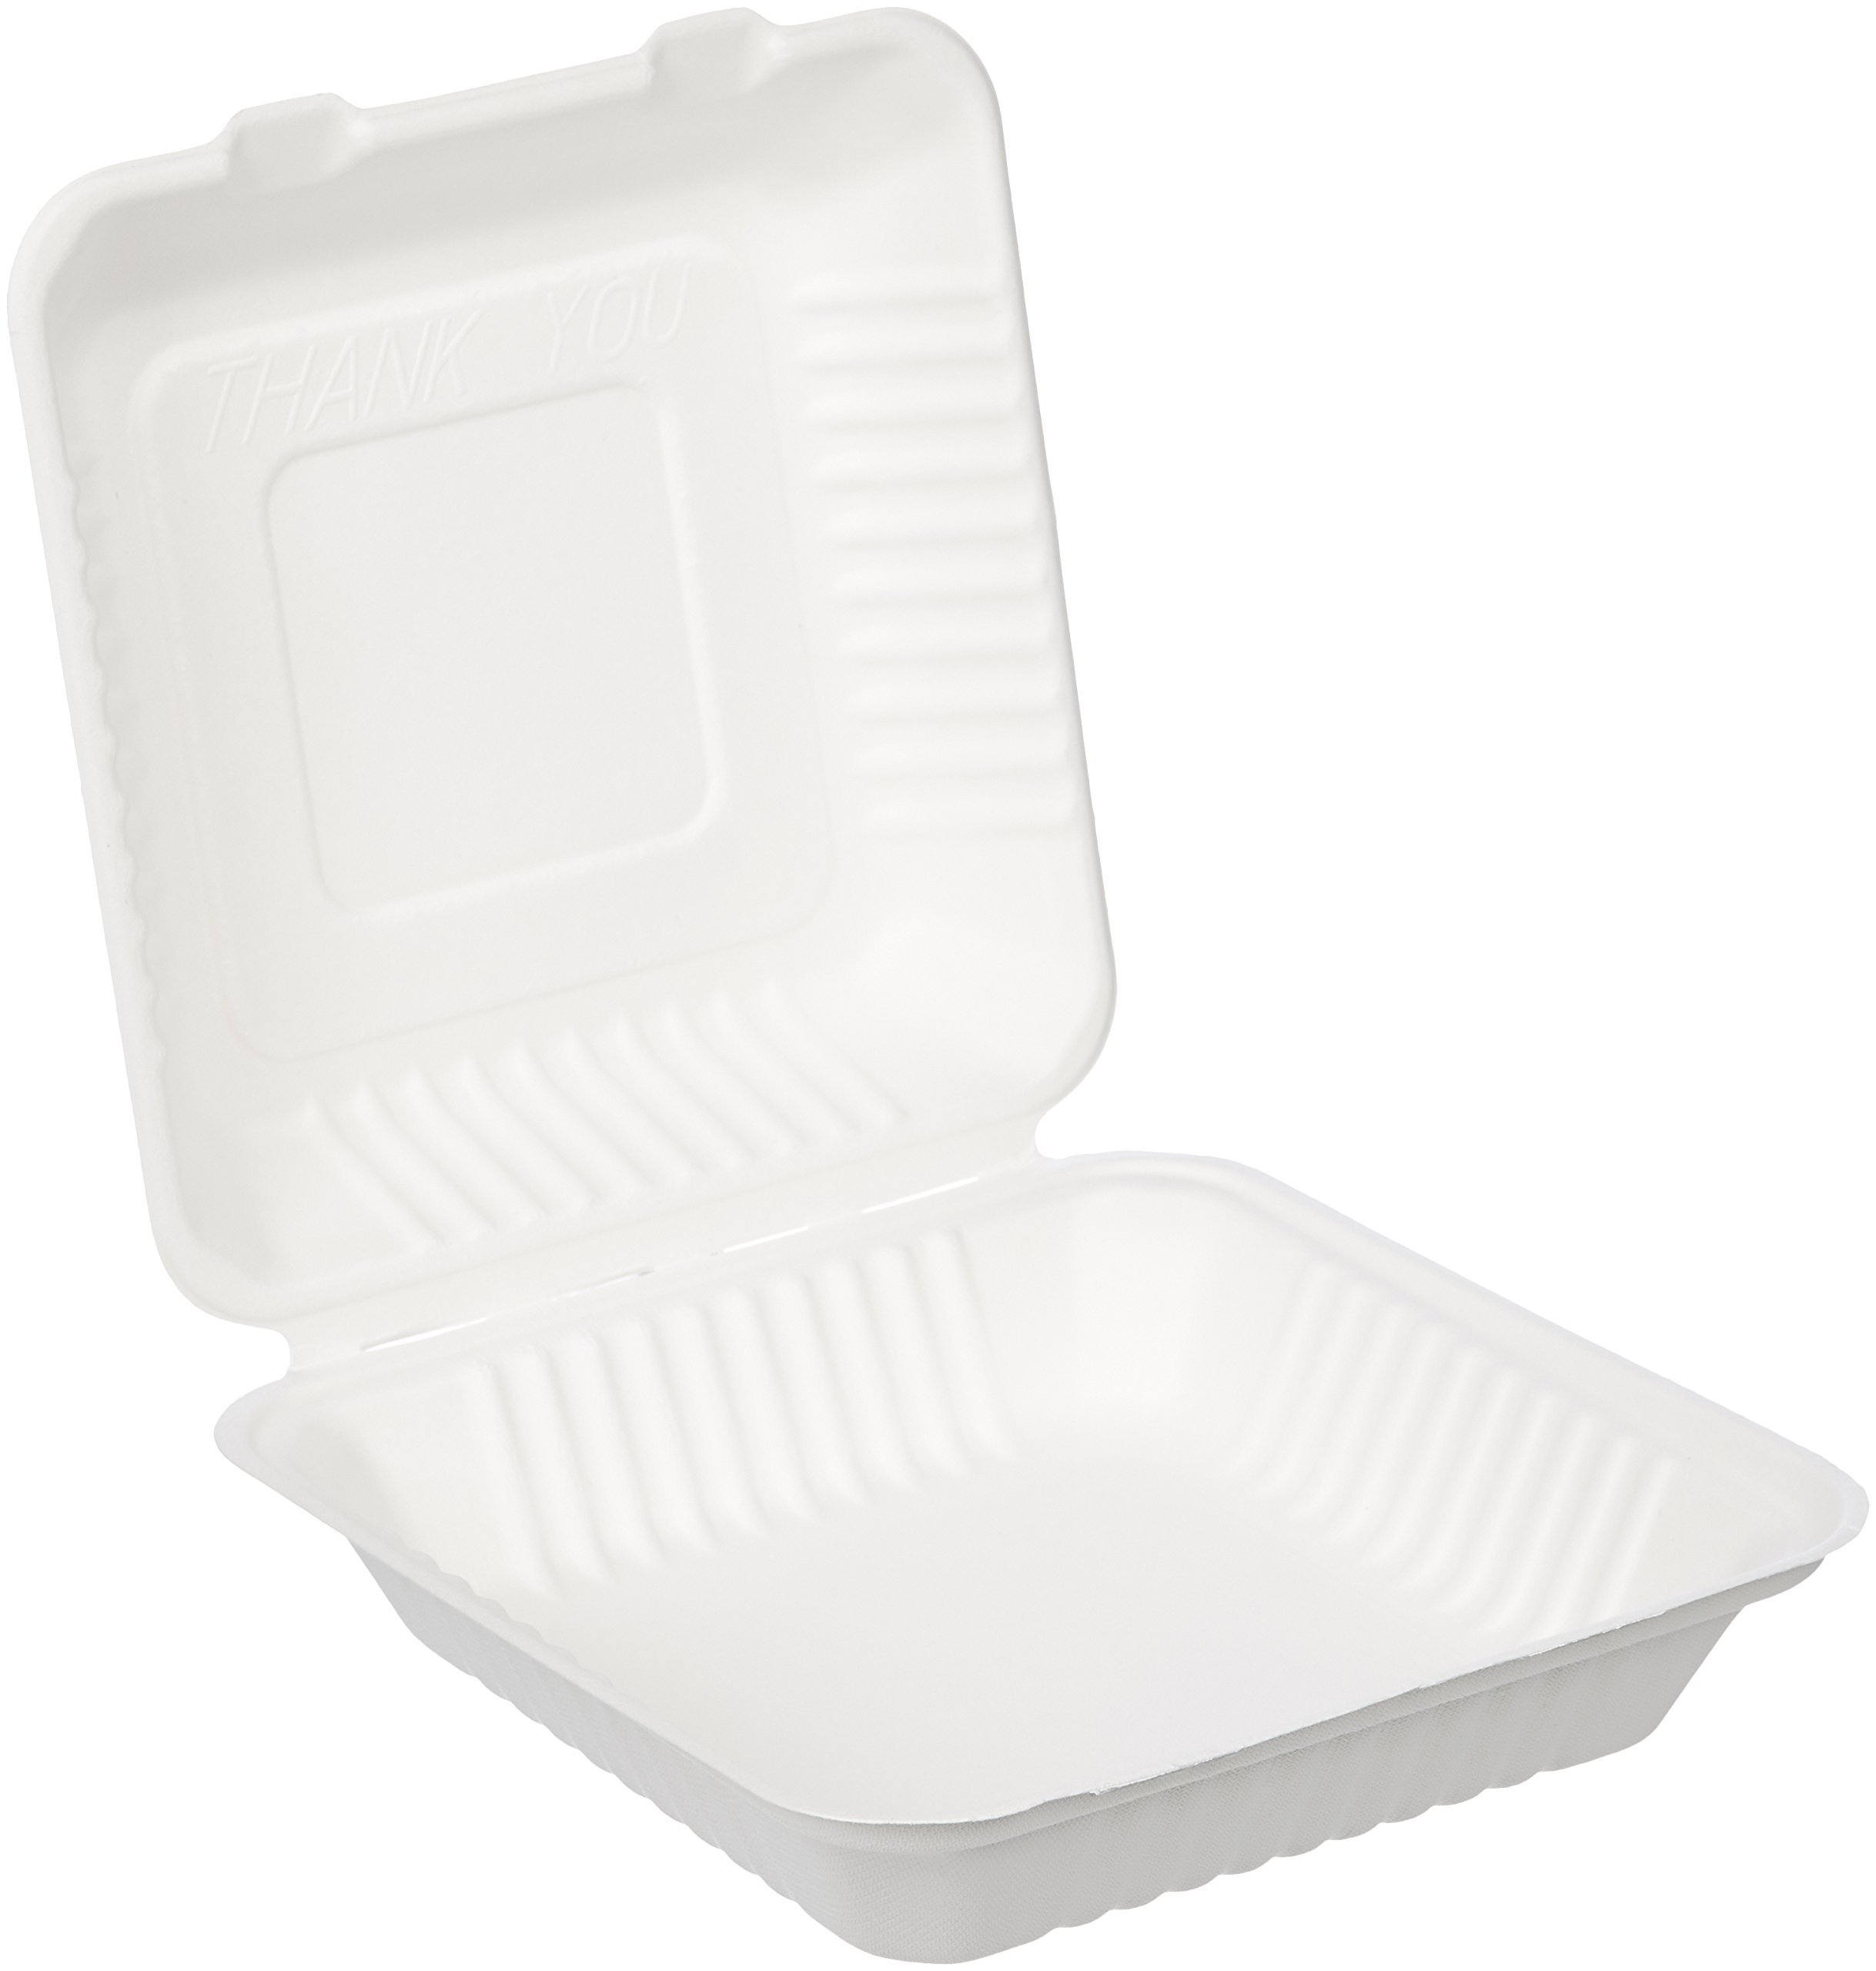 AmazonBasics 9'' x 9'' x 3.19'' Compostable Clamshell Take-Out Food Container, 300-Count by AmazonBasics (Image #1)